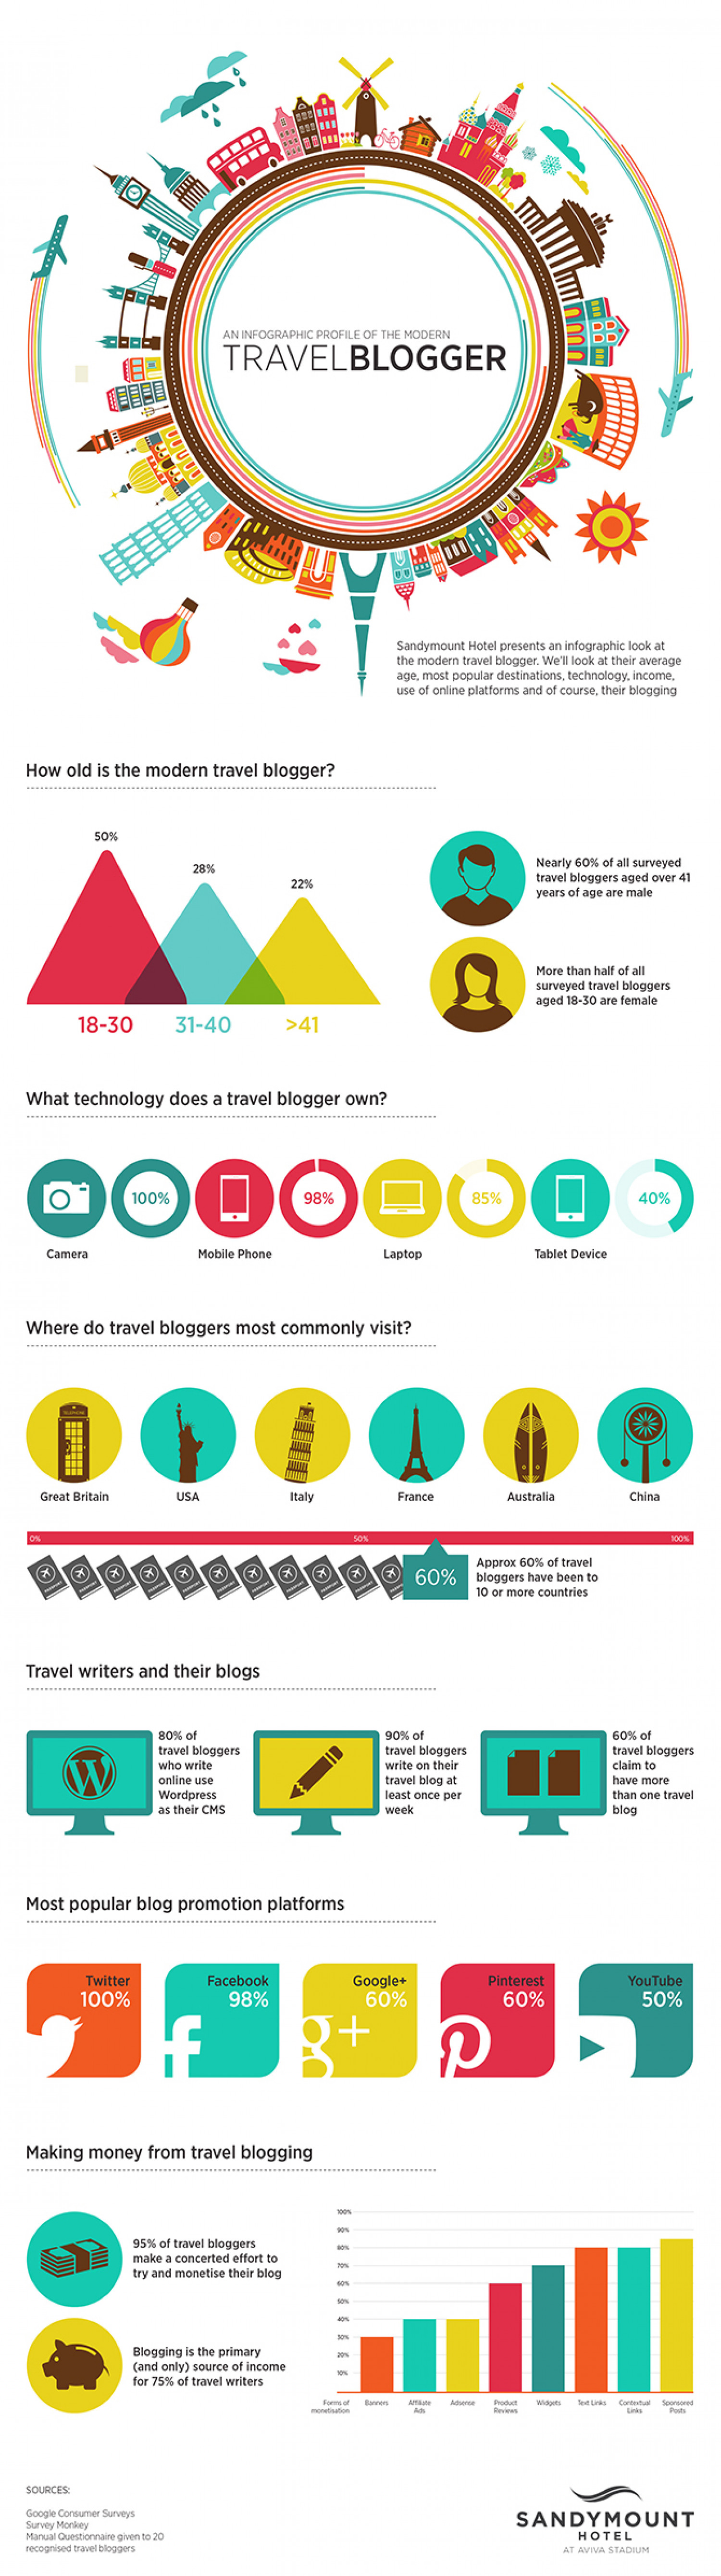 Profile of the Modern Travel Blogger Infographic